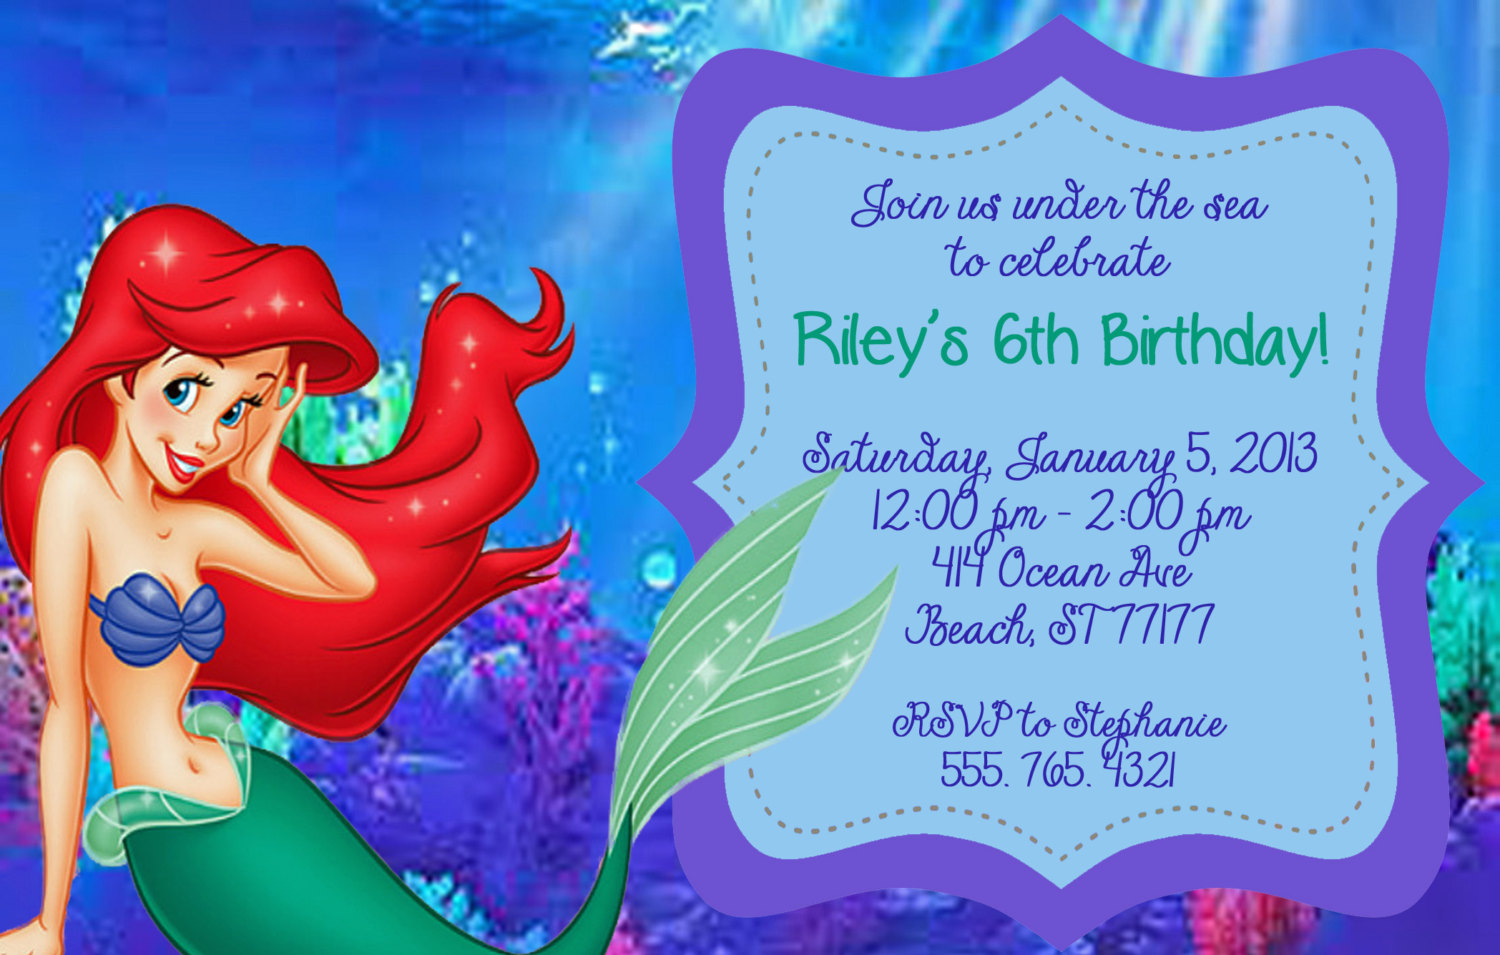 The little mermaid birthday invitations dolanpedia invitations little mermaid invitations hqcttiqk filmwisefo